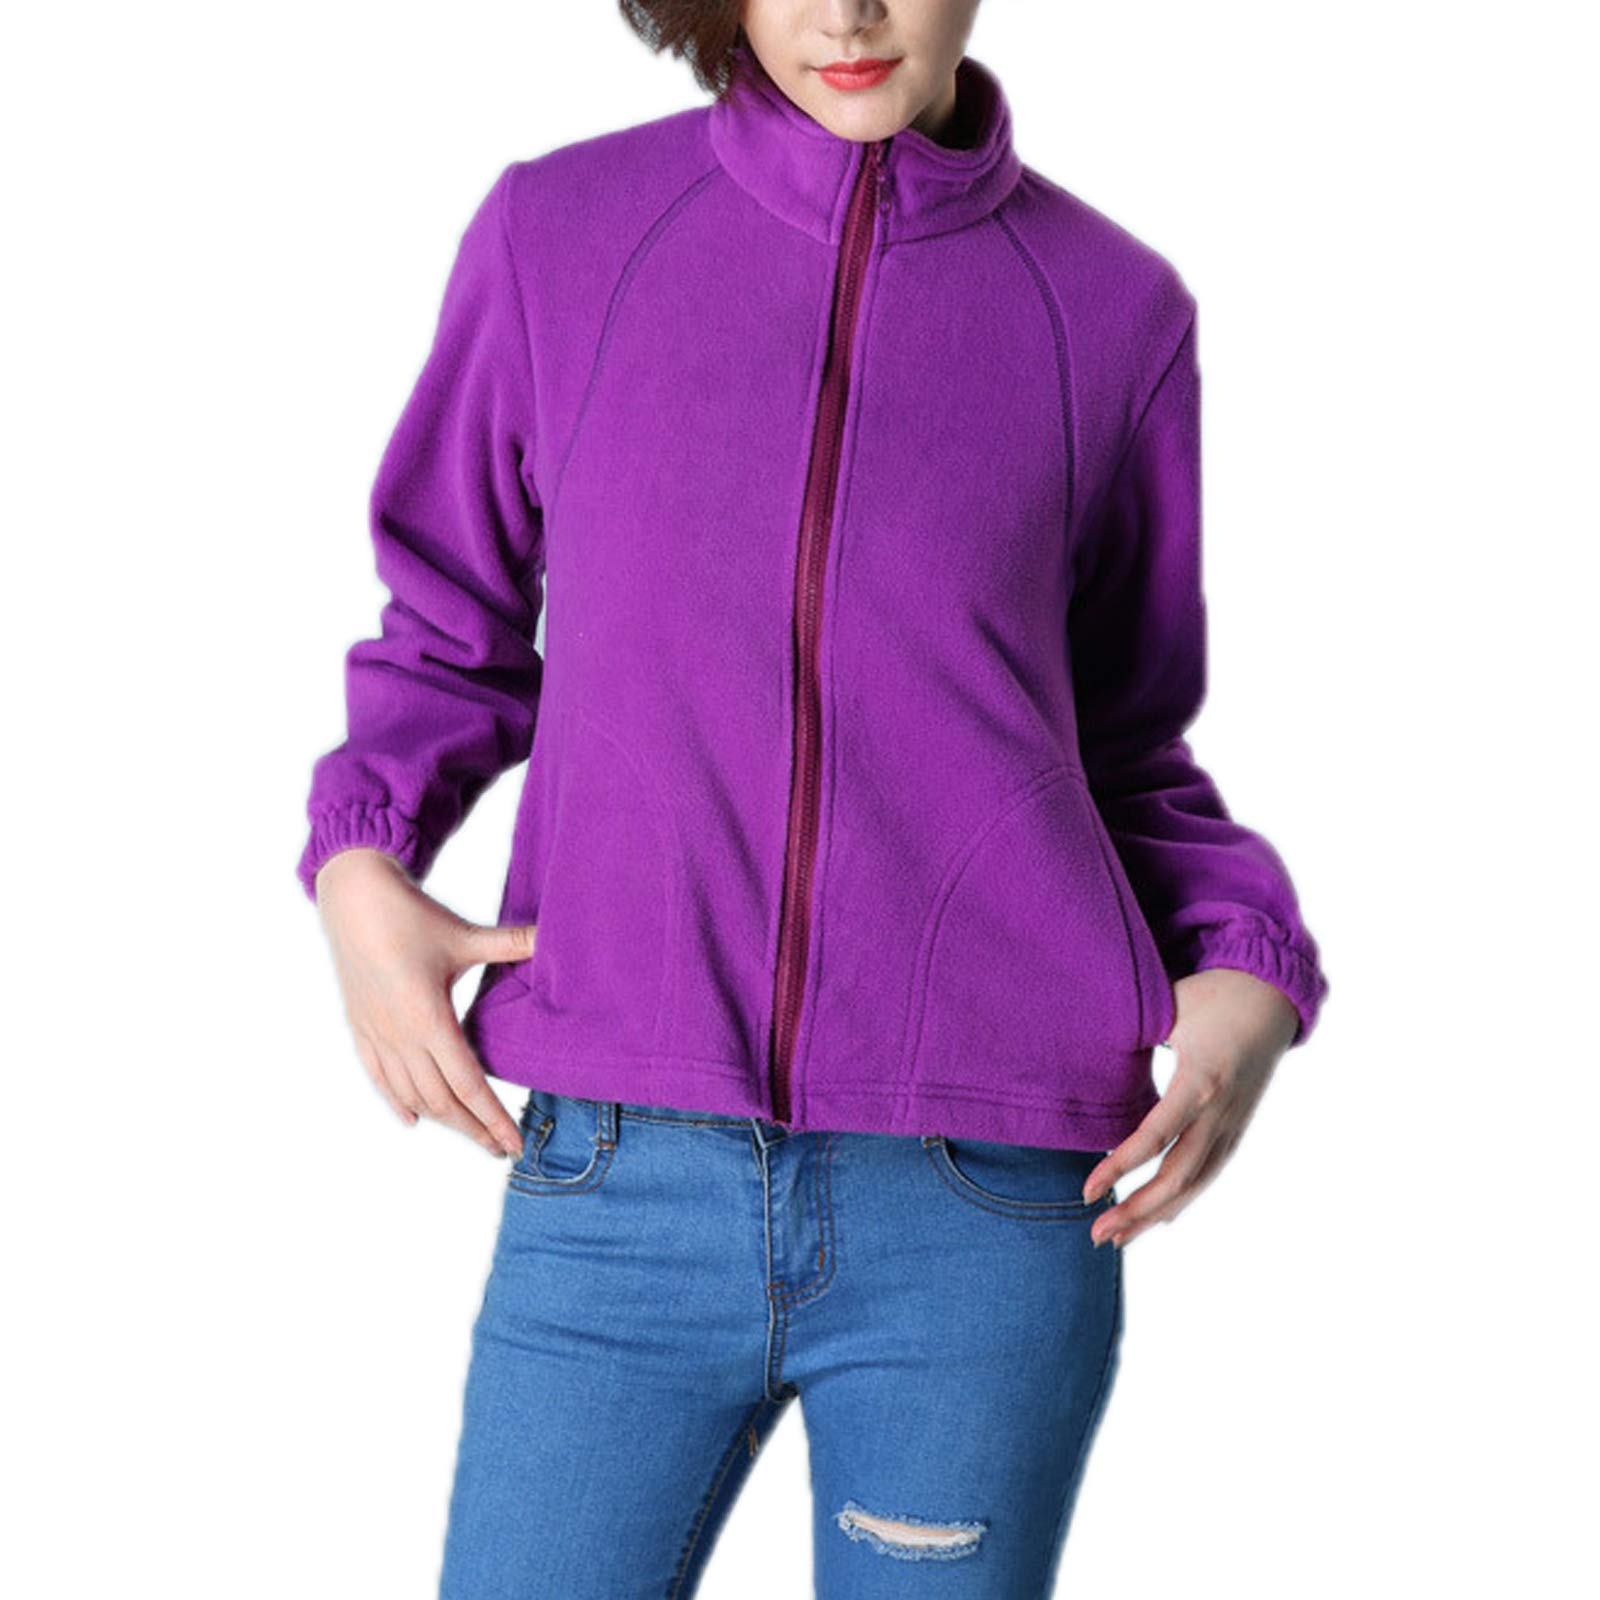 Elonglin Womens Fleece Jacket Full Zip Stand Collar Sportwear Top Outwear Purple Bust 40.9''(Asie XL) by Elonglin